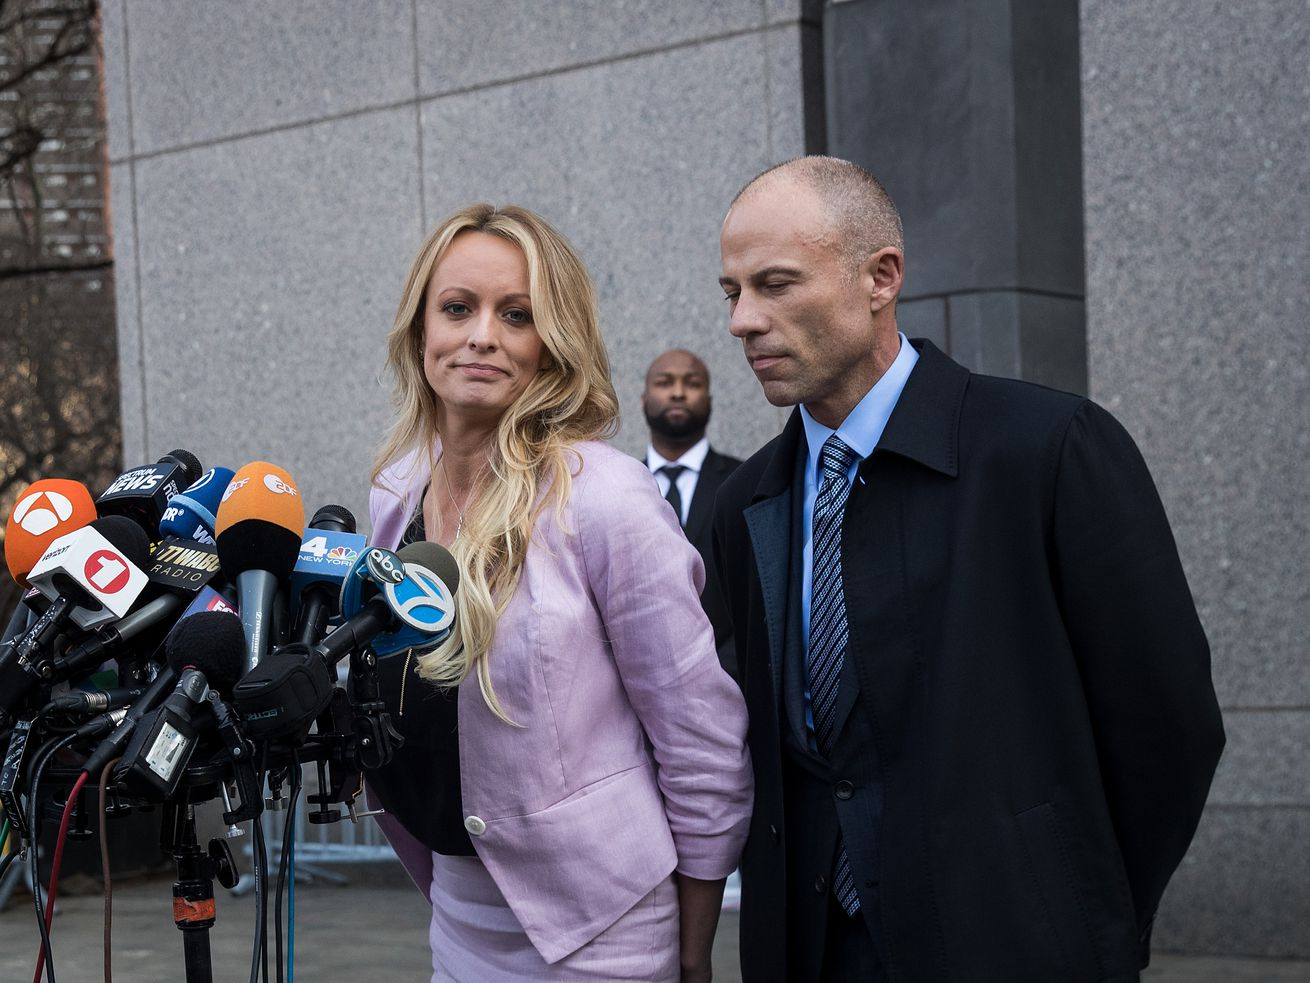 Stormy Daniels and Michael Avenatti as they exit the United States District Court in the Southern District of New York in April 2018.